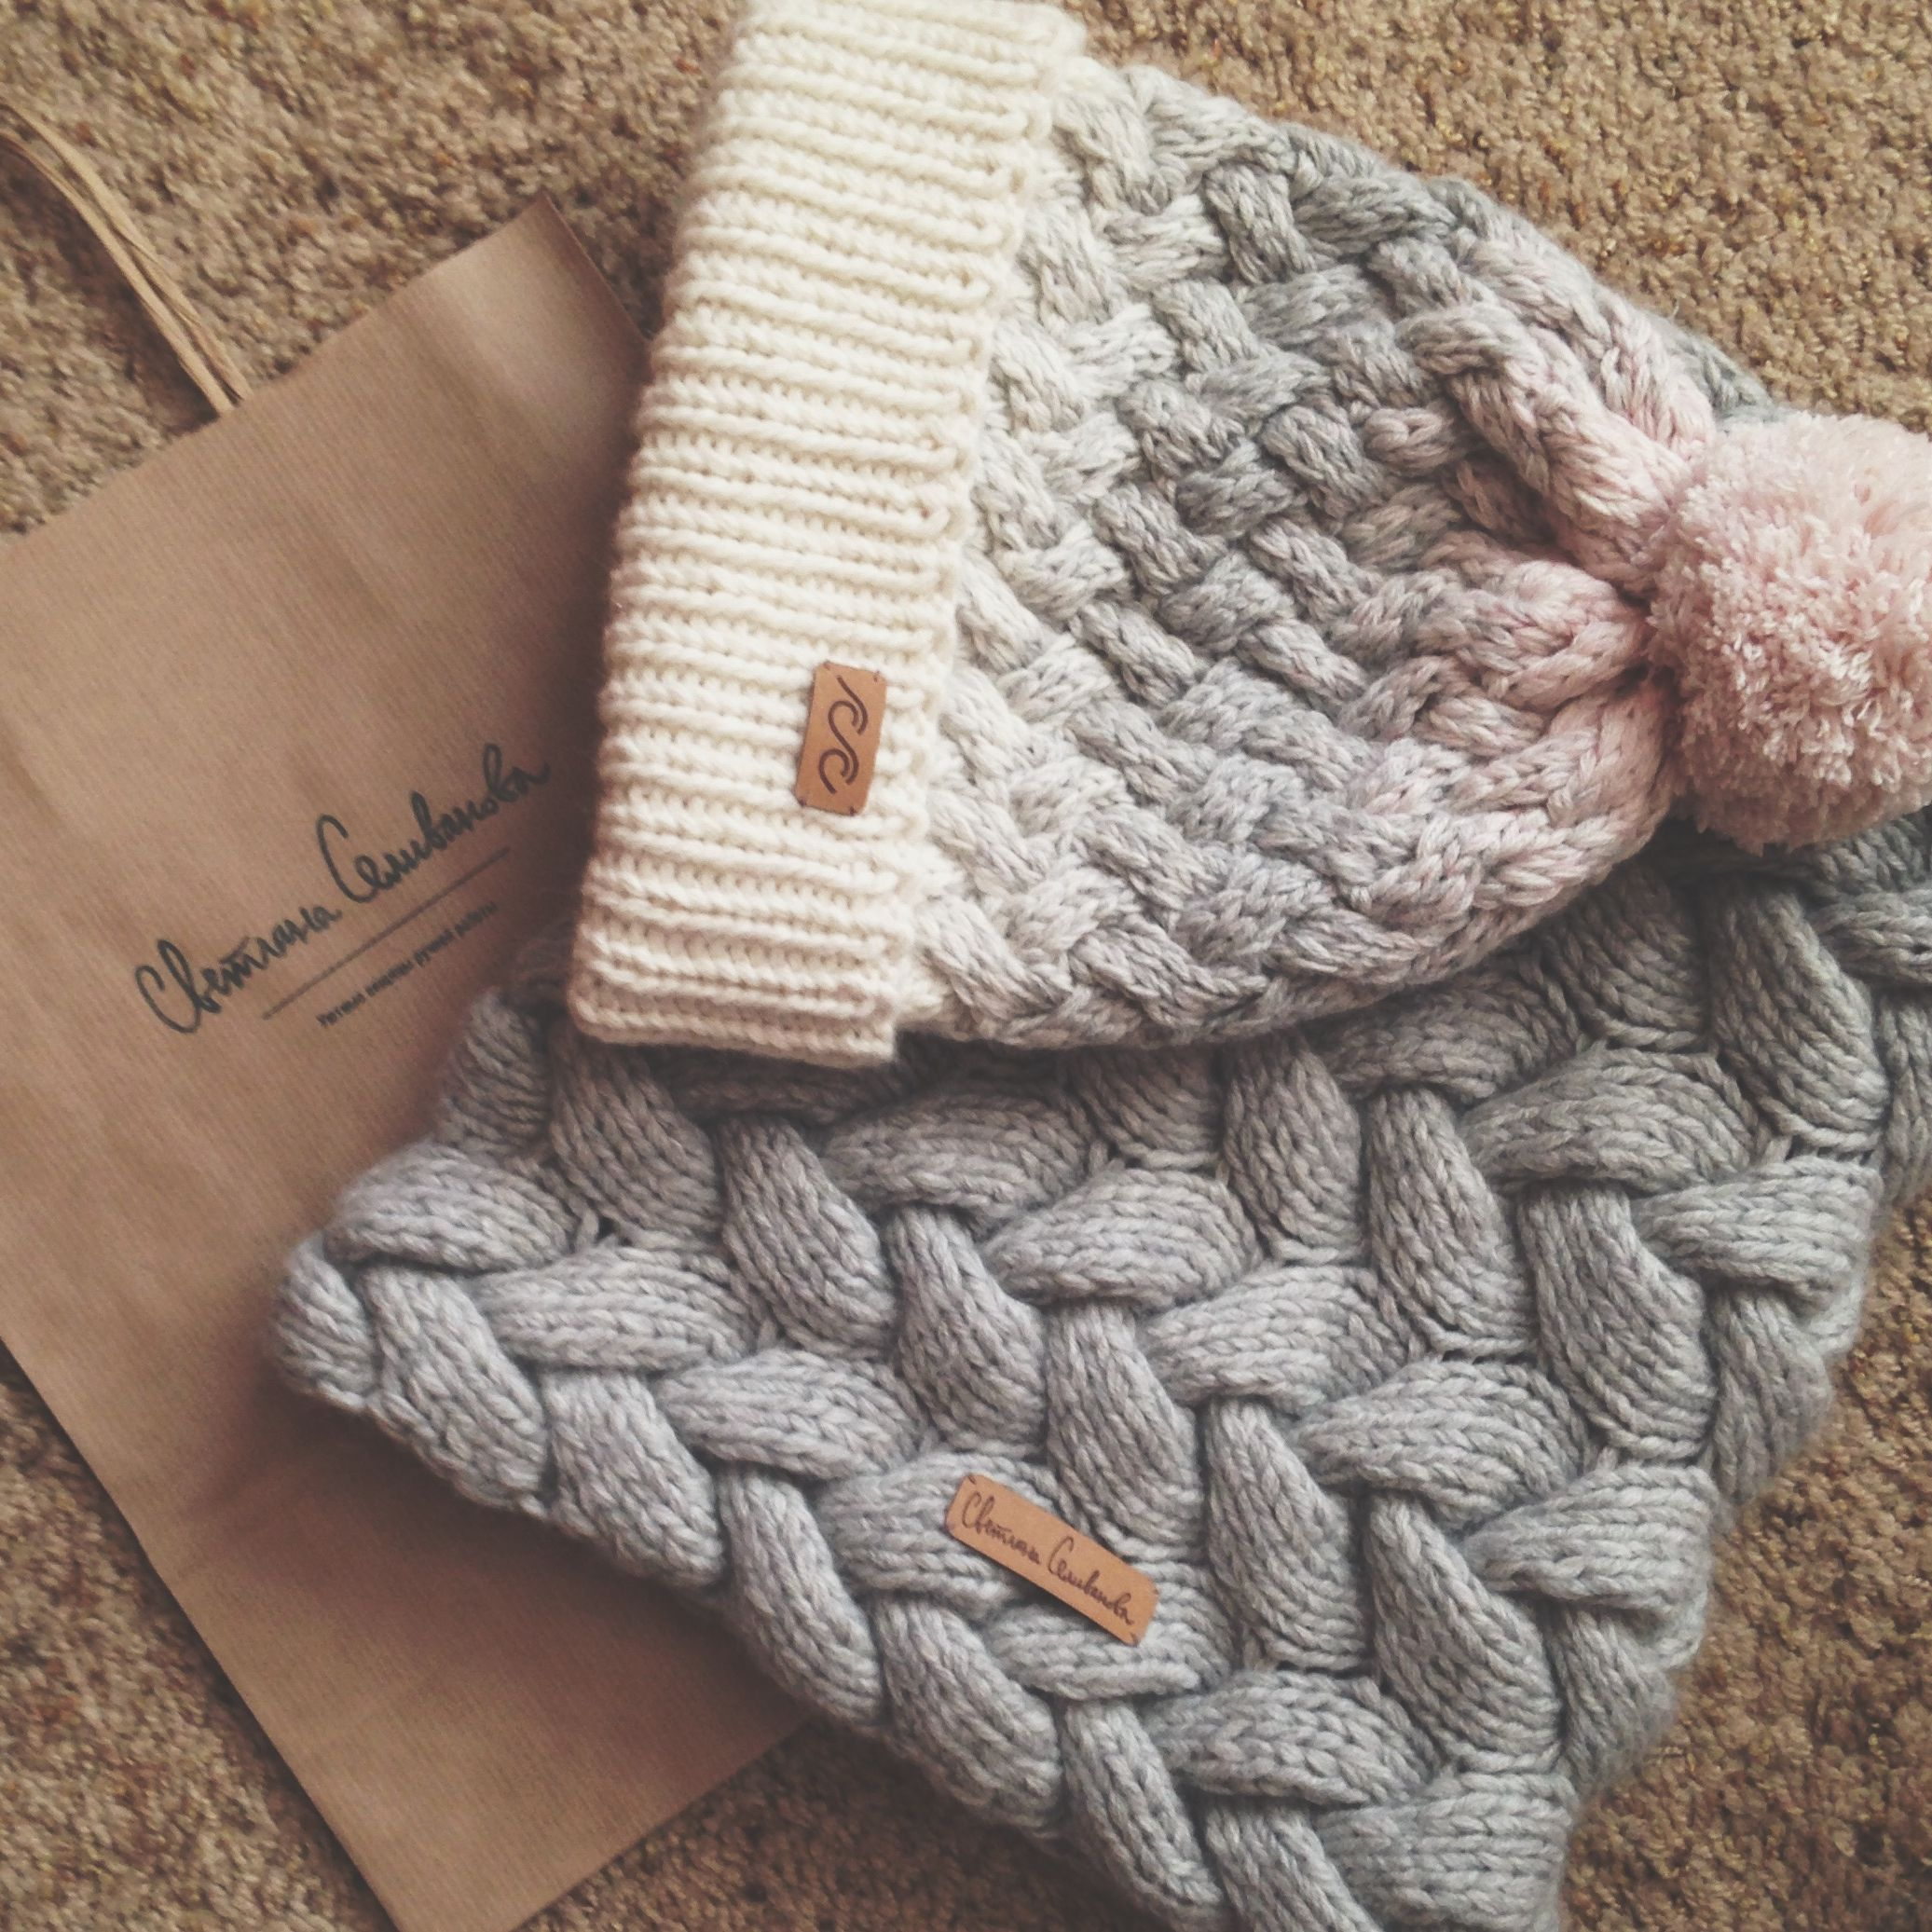 Knitted hat and cowl | My handmade | Pinterest | Knit hats ...